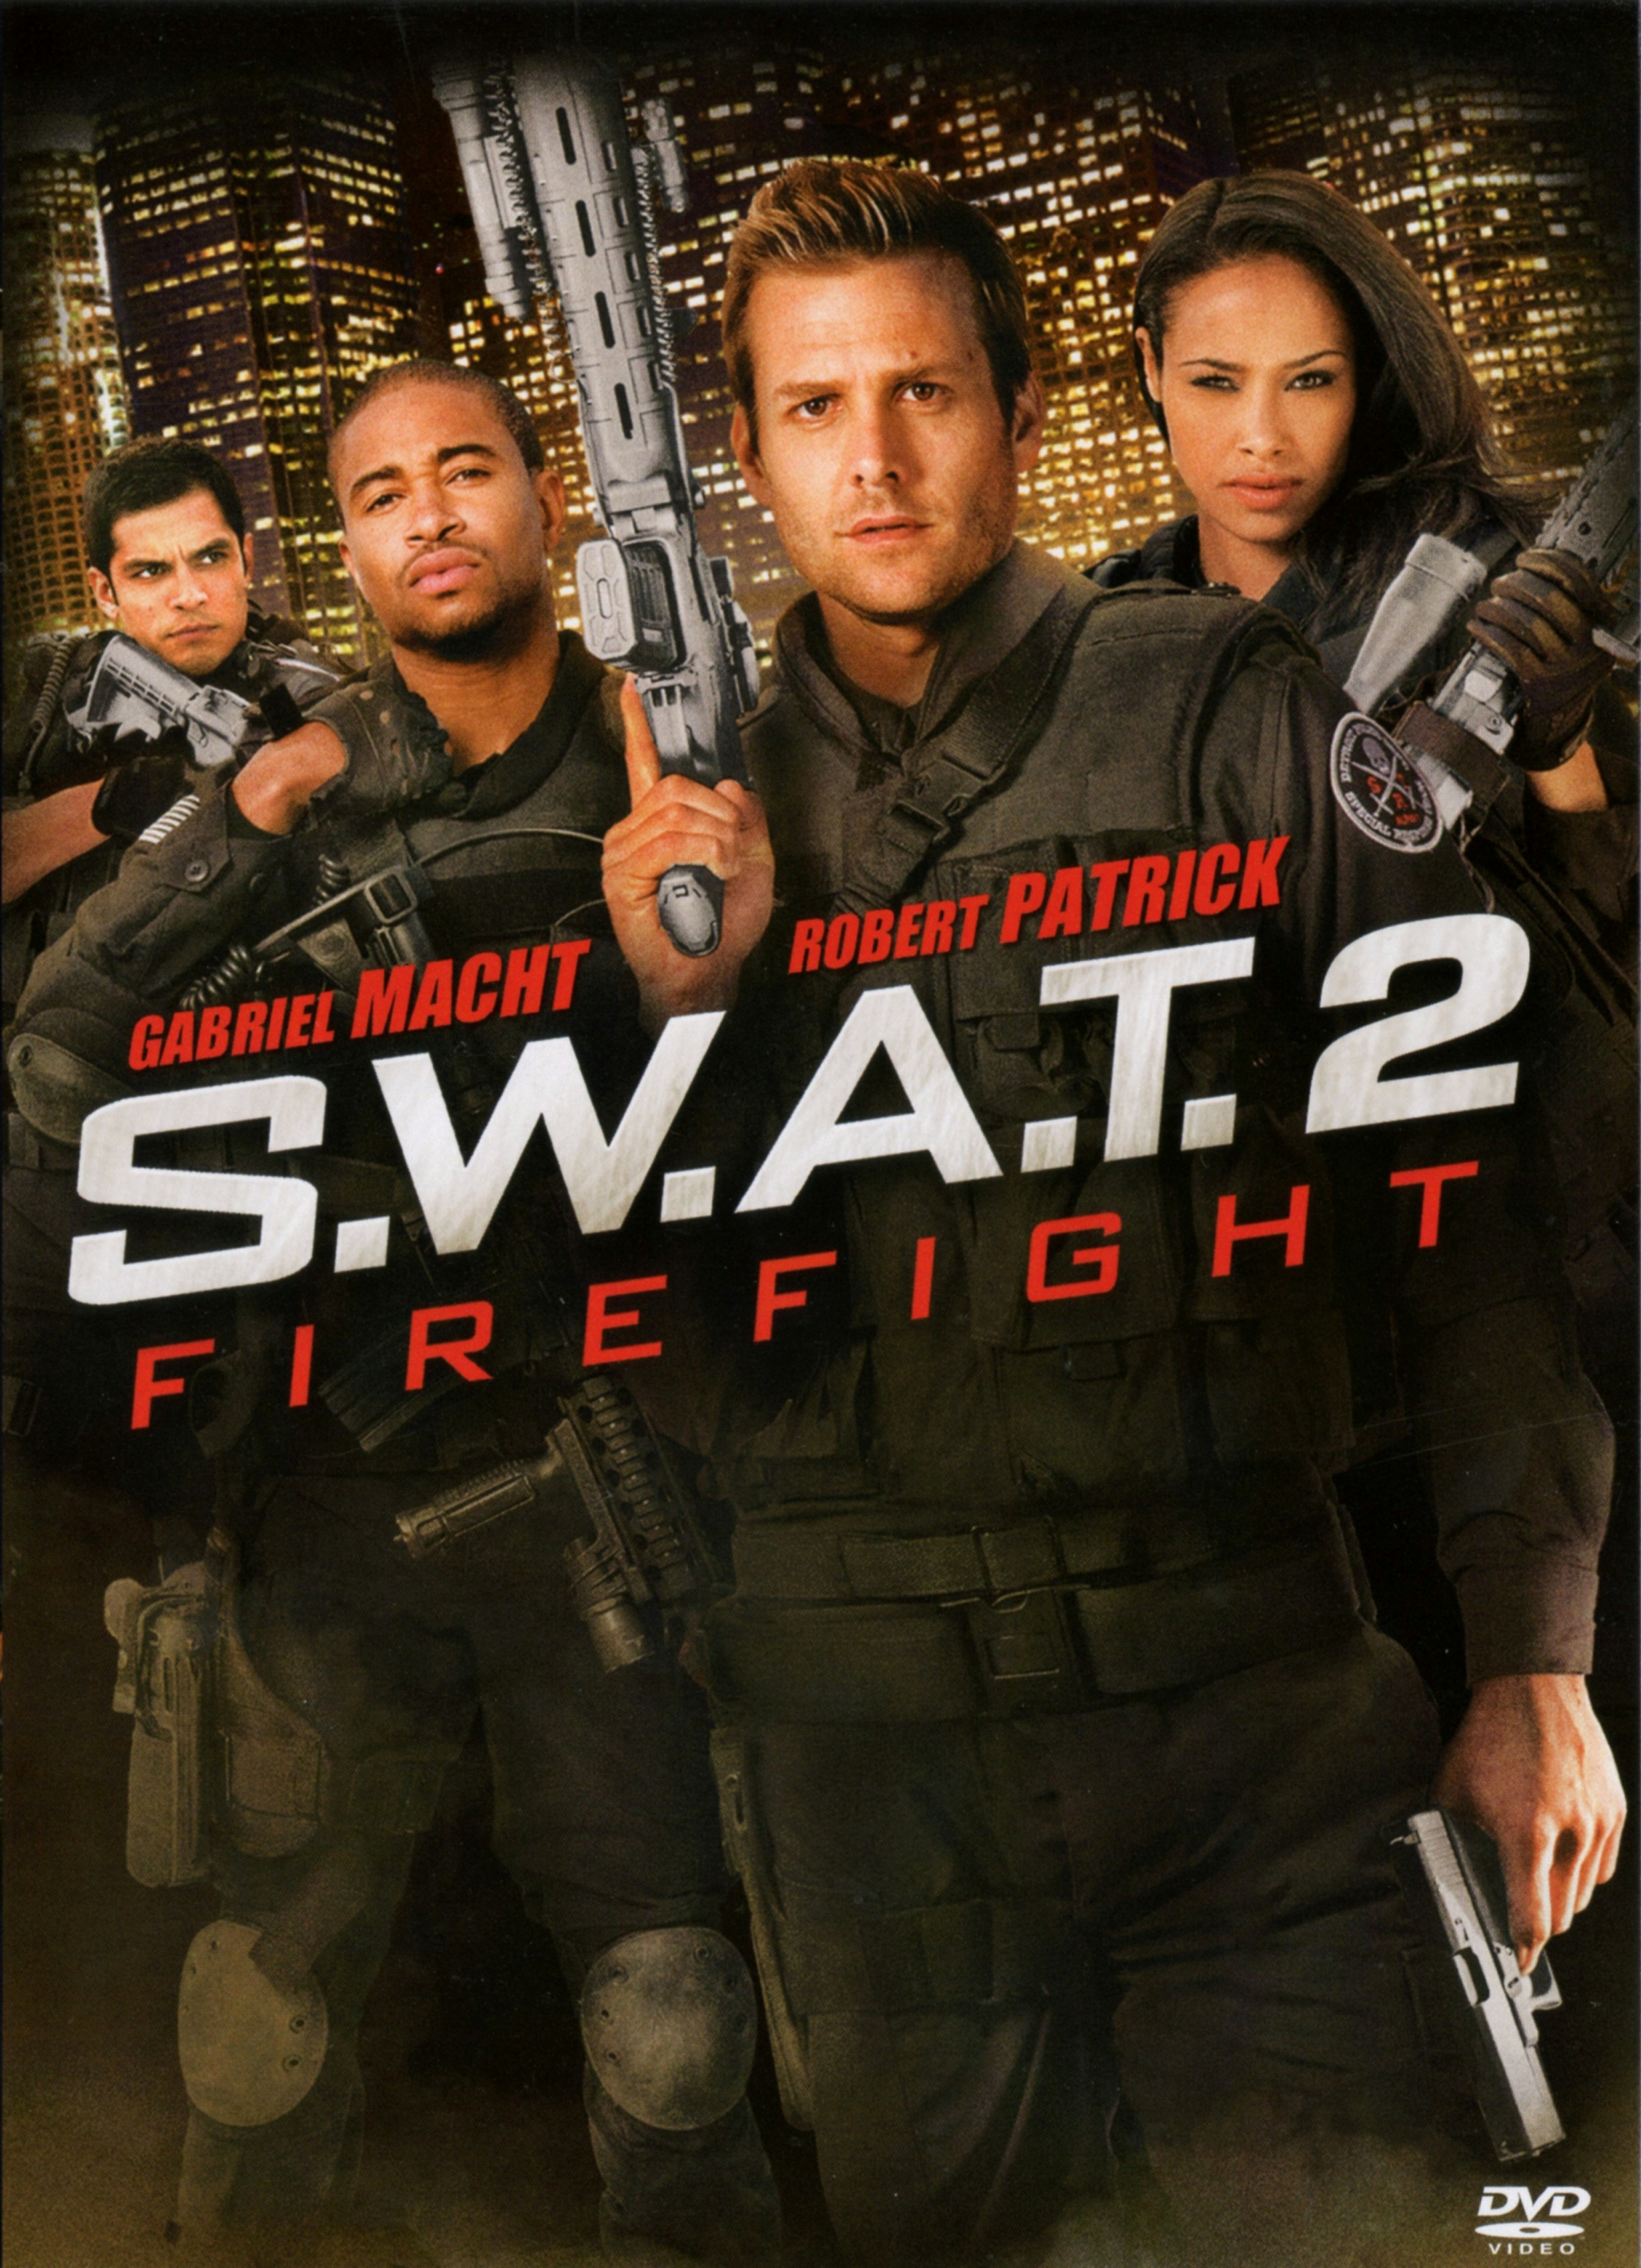 affiche du film S.W.A.T.: Firefight